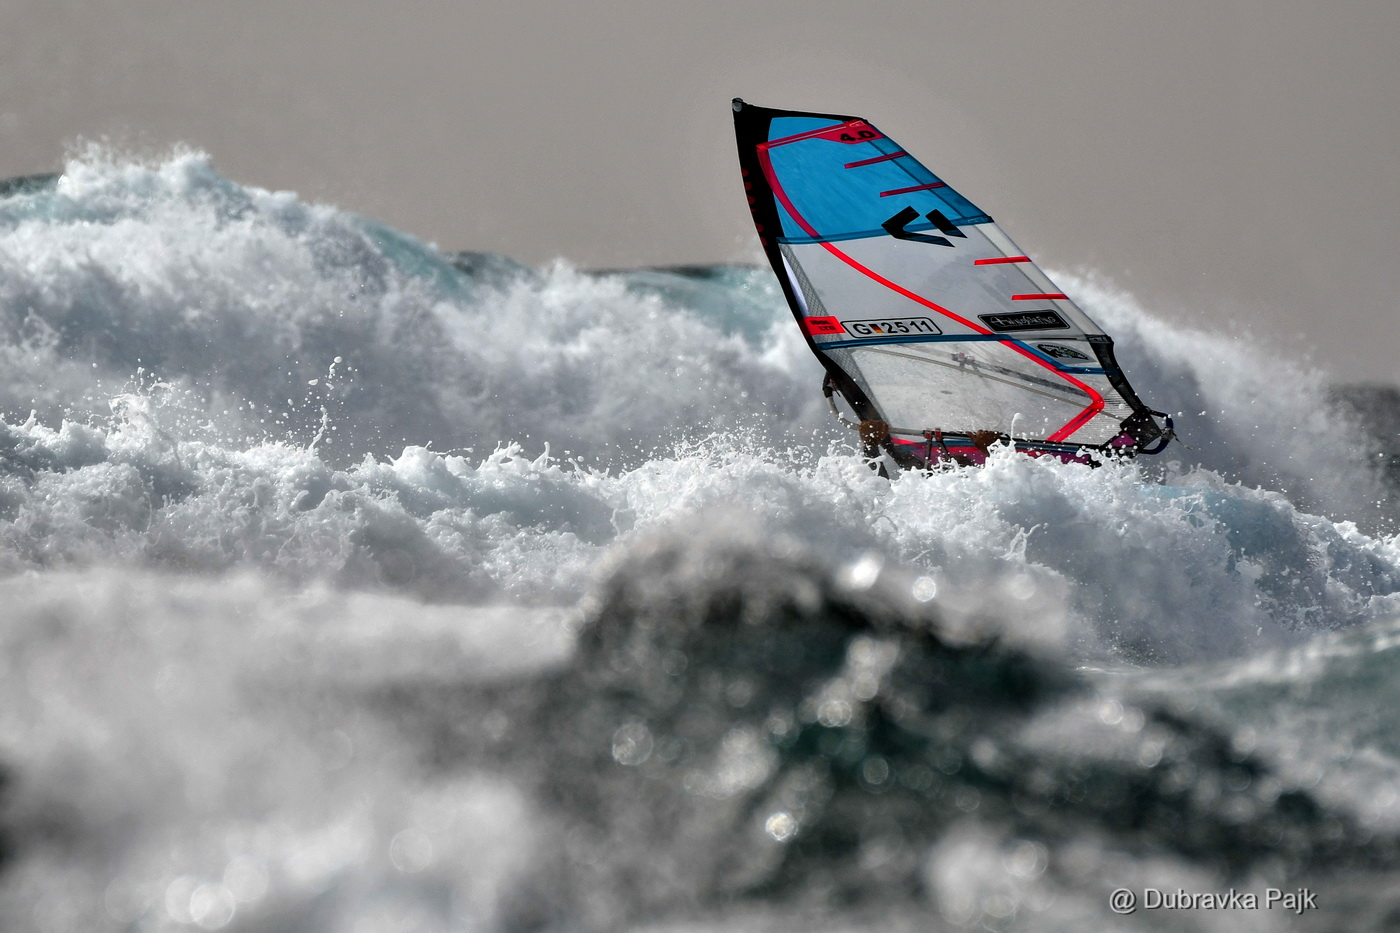 Freestyle Windsurfing – El Medano, Tenerife, Canary Islands, March 2020